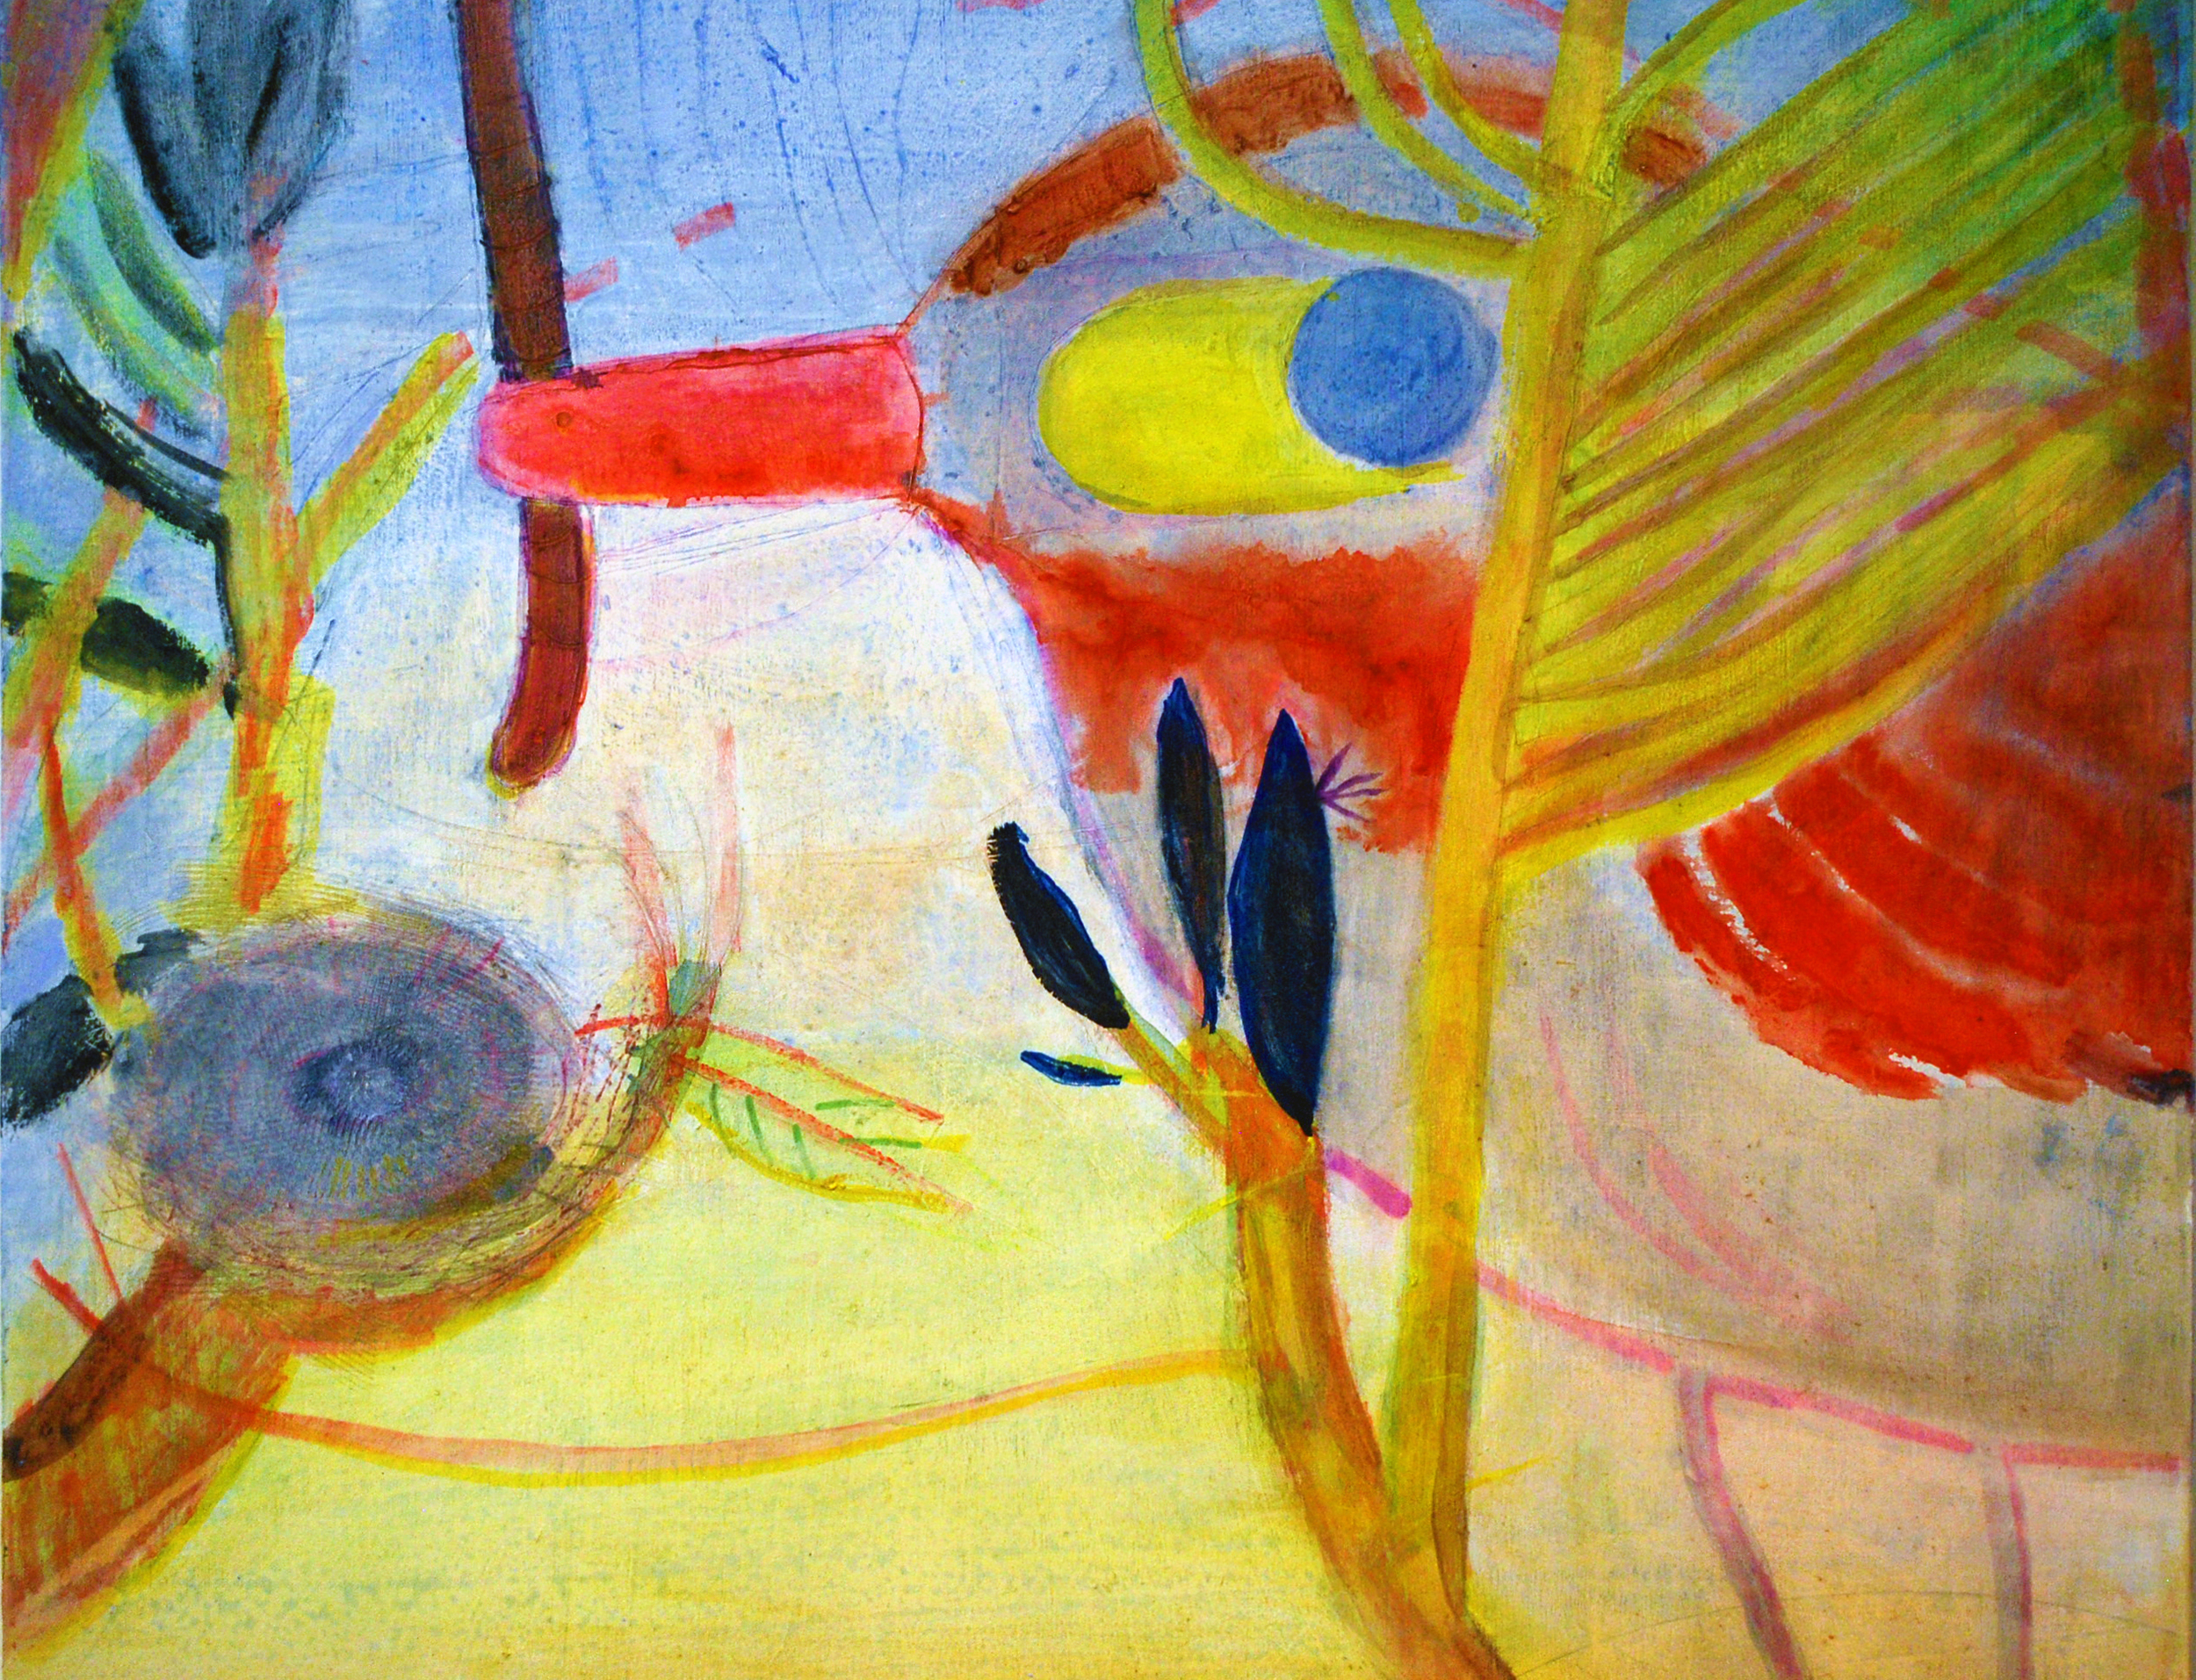 Detail of A Worm's Reckoning